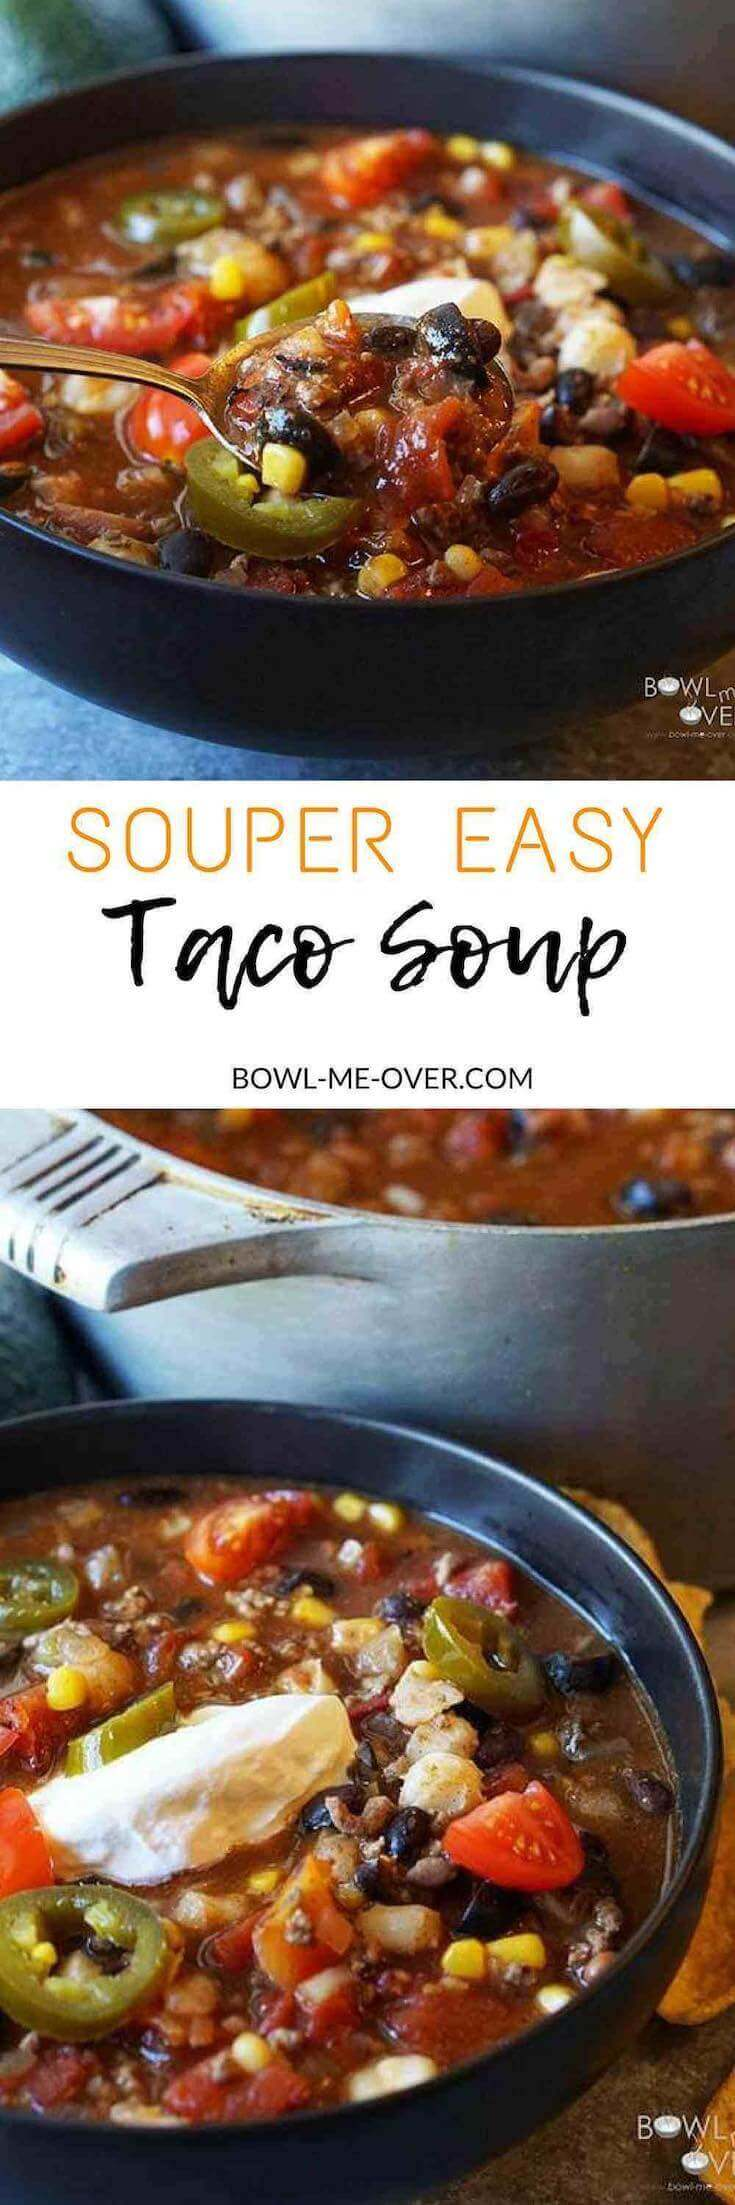 Easy Taco Soup is a spicy and delicious soup that's made with pantry staples! I#TacoSoup #BowlMeOver